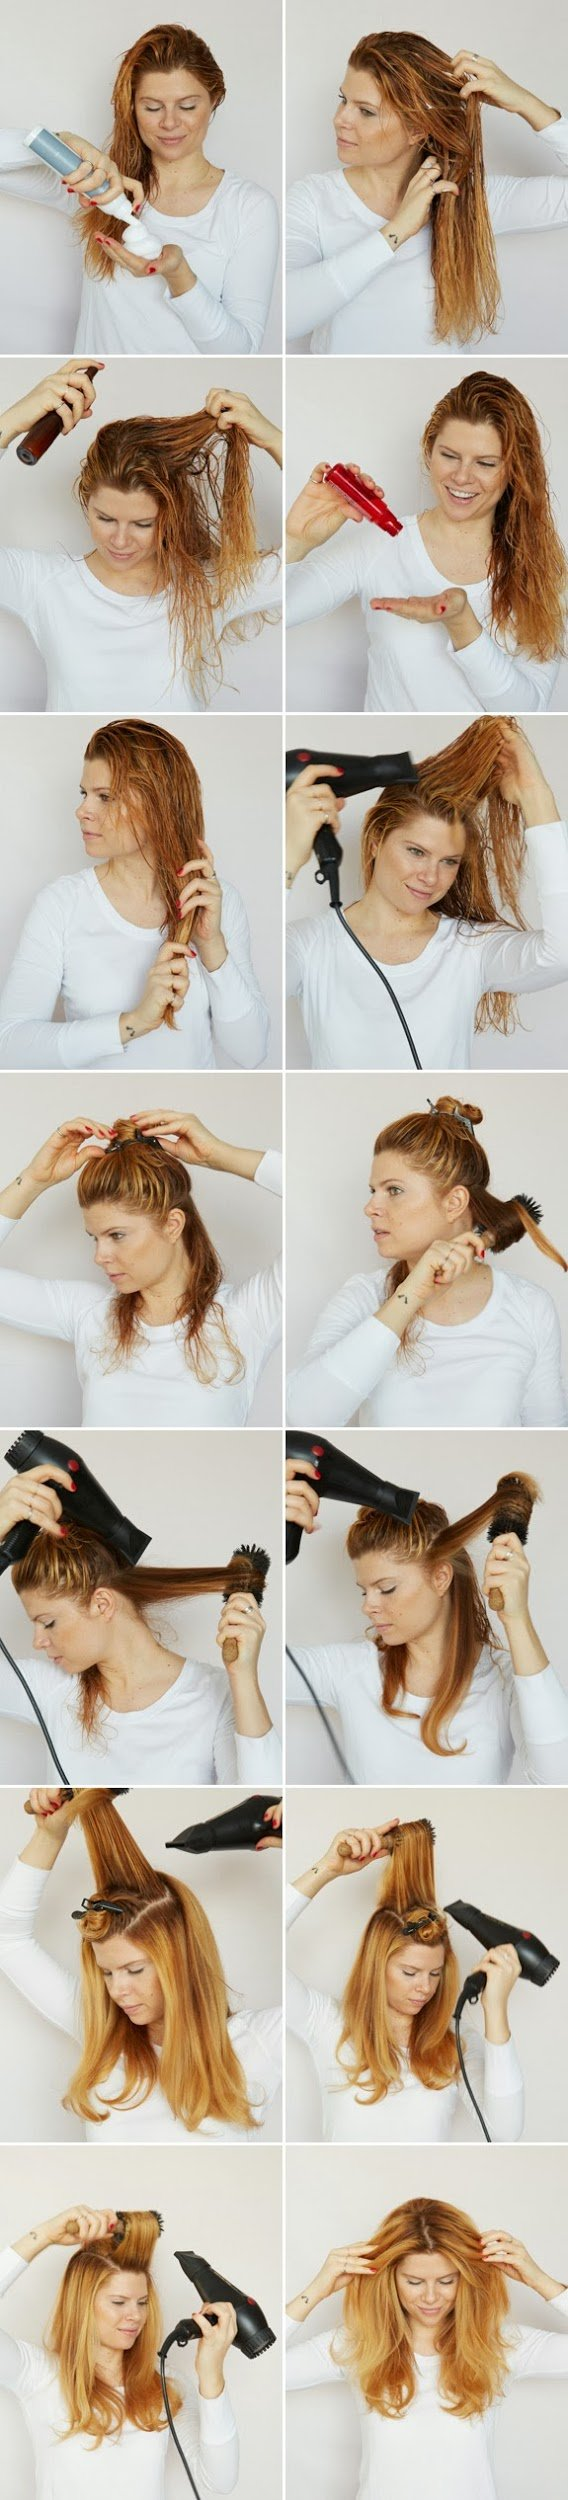 how-to-blow-dry-your-hair-perfect-blow-out-like-salon-stylist-professional-